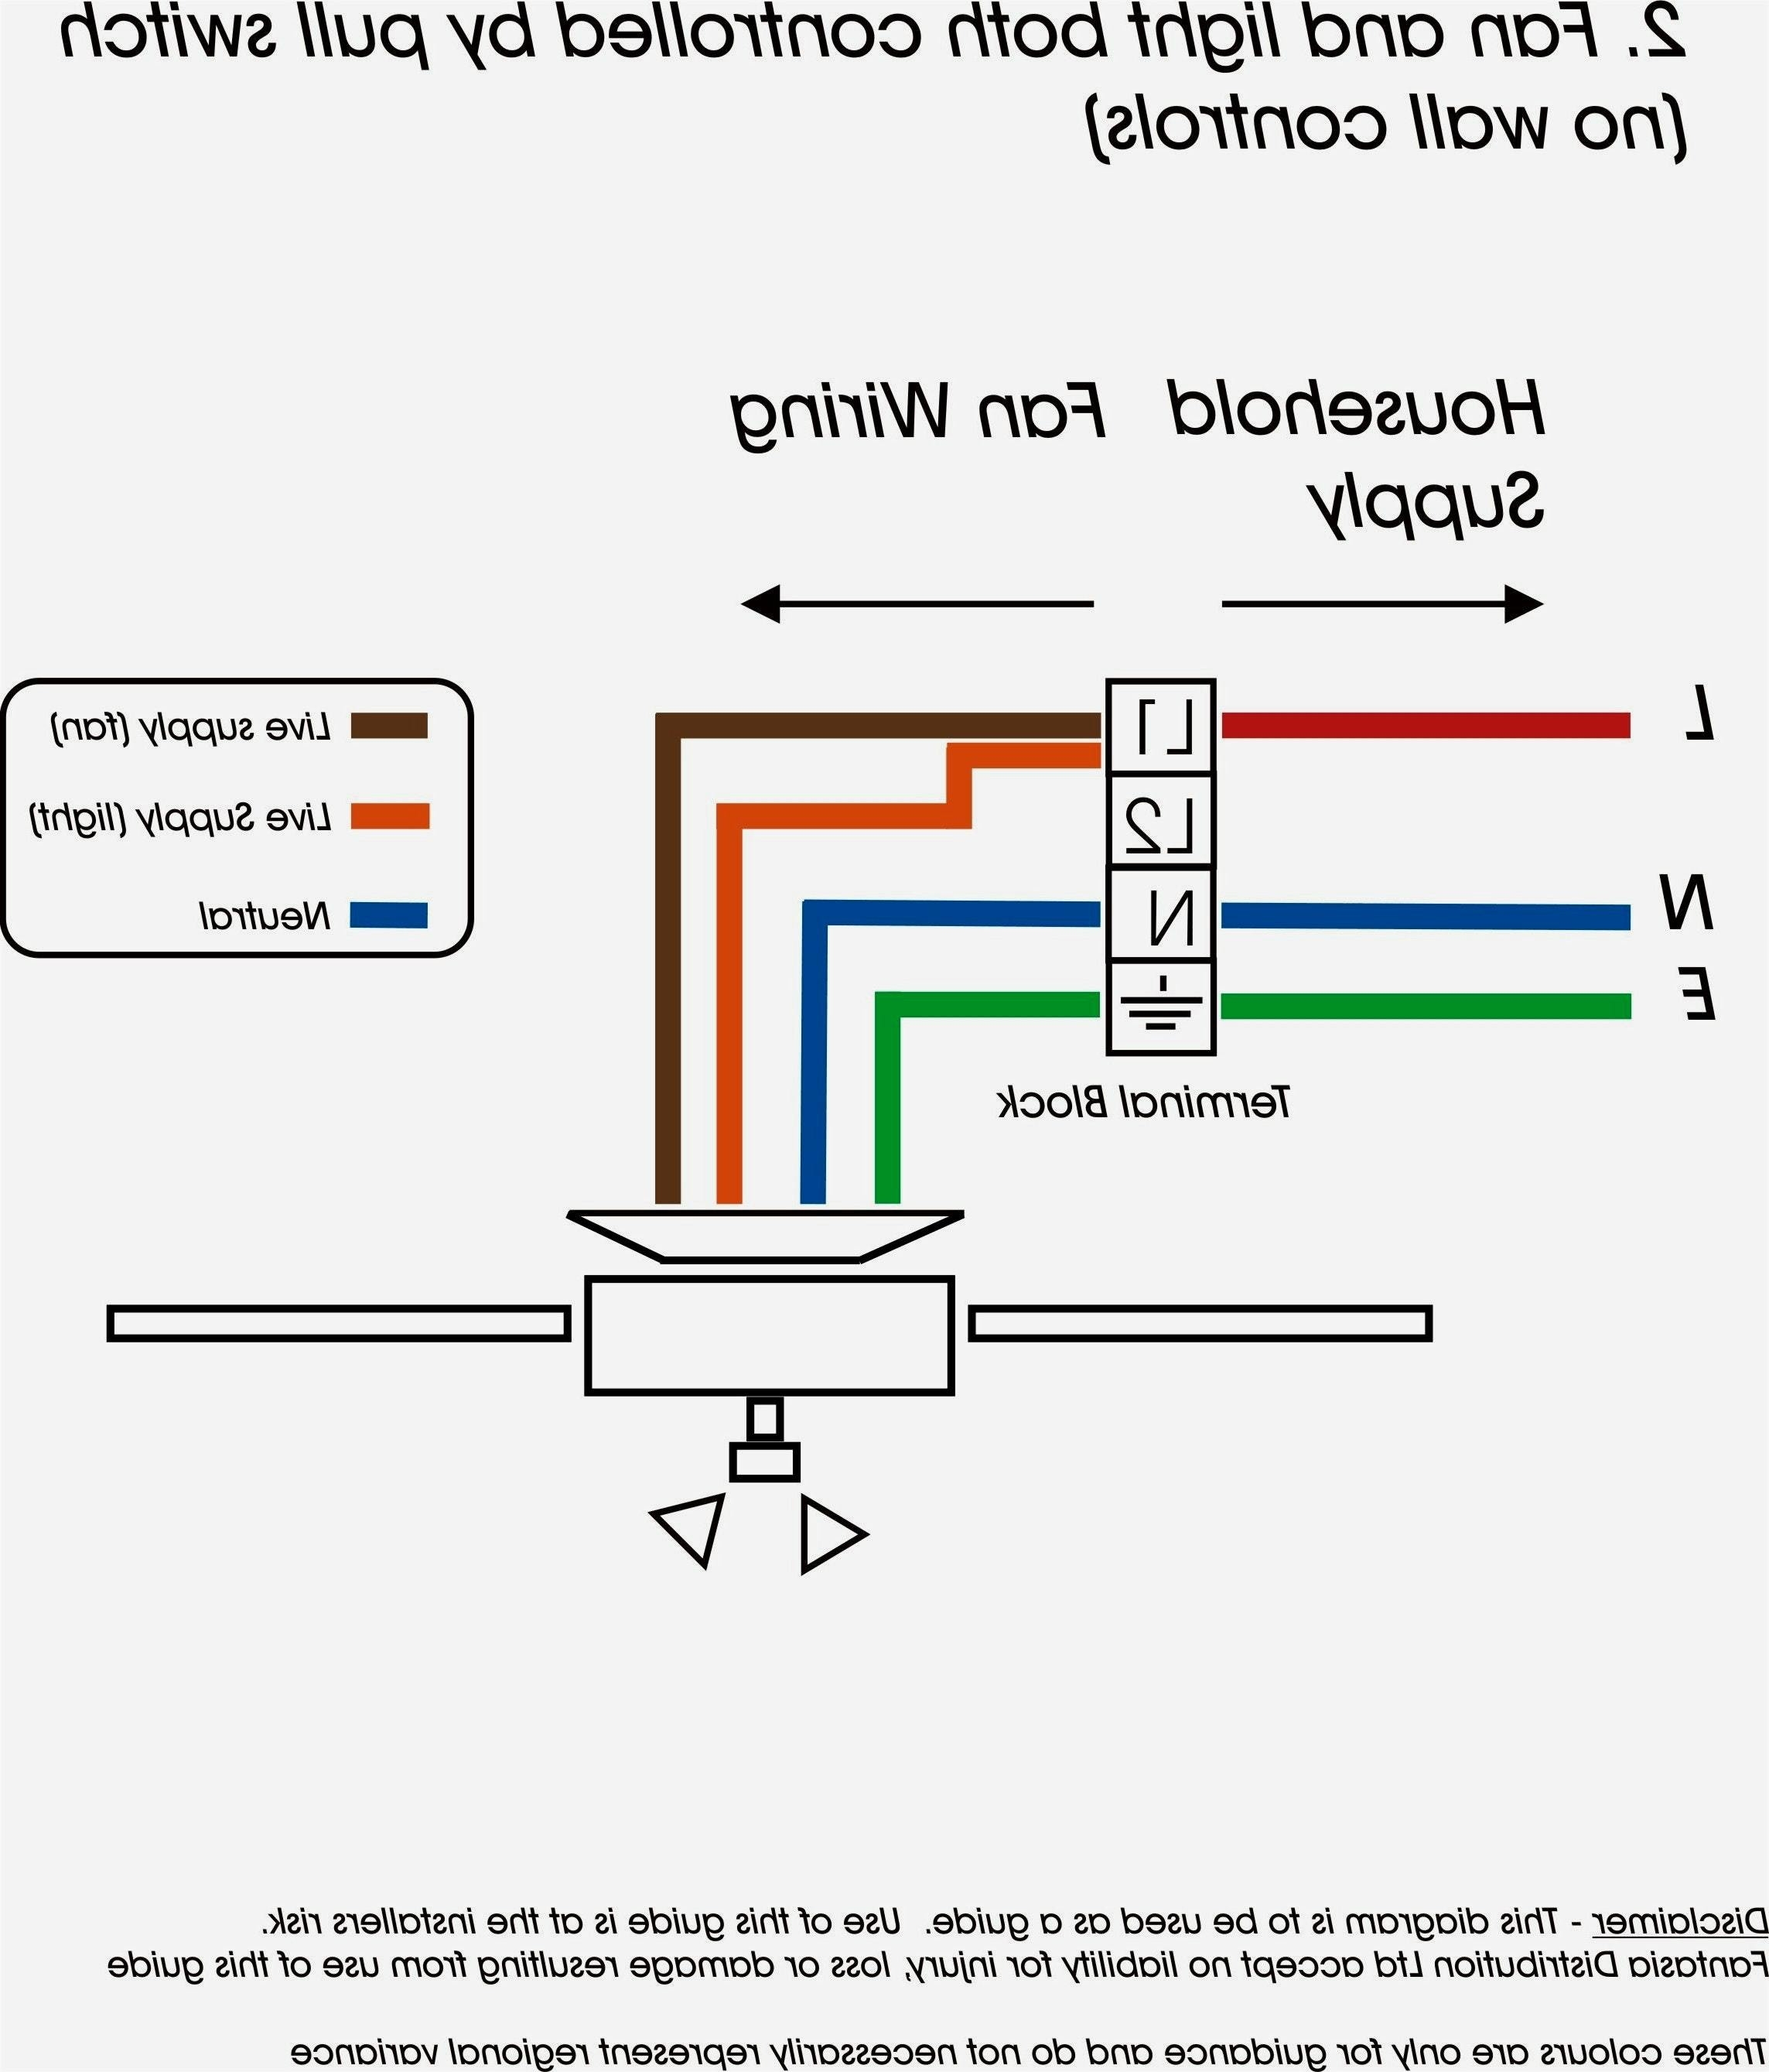 3 way switch wiring diagram light in middle Download-Wire 3 Way Switch Light In Middle Best Unique 3 and 4 Way Switch Wiring Diagram 18-d